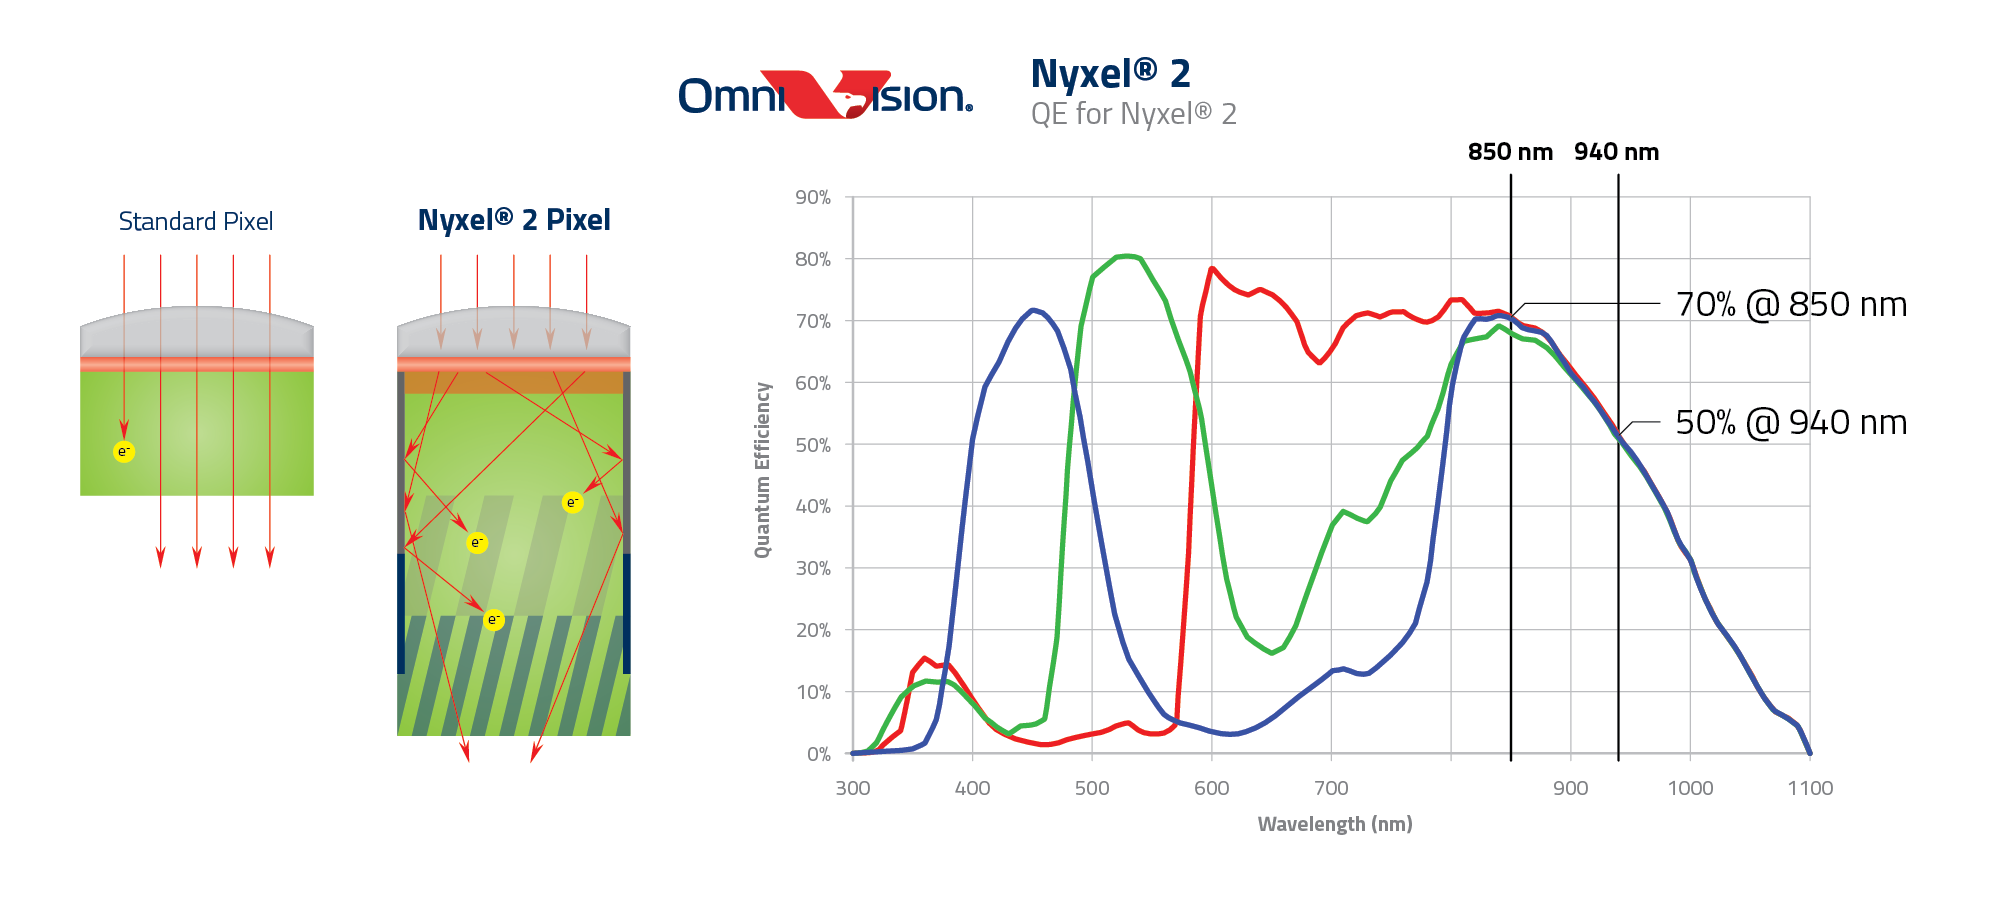 Nyxel® 2 is OmniVision's second generation, revolutionary near-infrared (NIR) technology for image sensors that operate in low to no ambient light conditions, now providing a 25% improvement in the invisible 940nm NIR light spectrum and a 17% bump at the barely visible 850nm NIR wavelength.